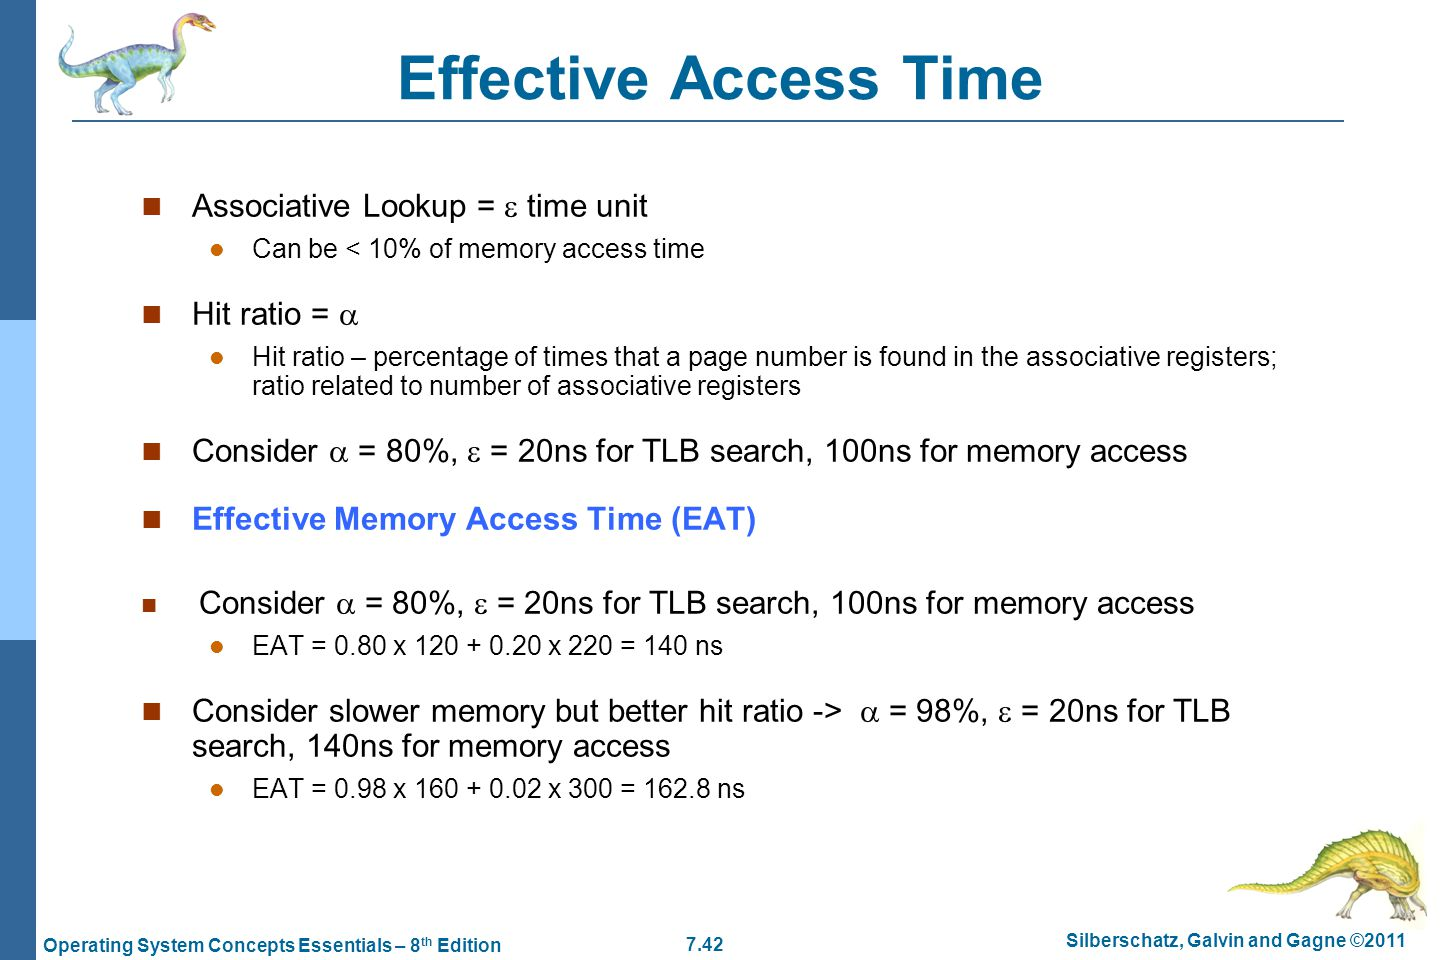 7.42 Silberschatz, Galvin and Gagne ©2011 Operating System Concepts Essentials – 8 th Edition Effective Access Time Associative Lookup =  time unit Can be < 10% of memory access time Hit ratio =  Hit ratio – percentage of times that a page number is found in the associative registers; ratio related to number of associative registers Consider  = 80%,  = 20ns for TLB search, 100ns for memory access Effective Memory Access Time (EAT) Consider  = 80%,  = 20ns for TLB search, 100ns for memory access EAT = 0.80 x 120 + 0.20 x 220 = 140 ns Consider slower memory but better hit ratio ->  = 98%,  = 20ns for TLB search, 140ns for memory access EAT = 0.98 x 160 + 0.02 x 300 = 162.8 ns